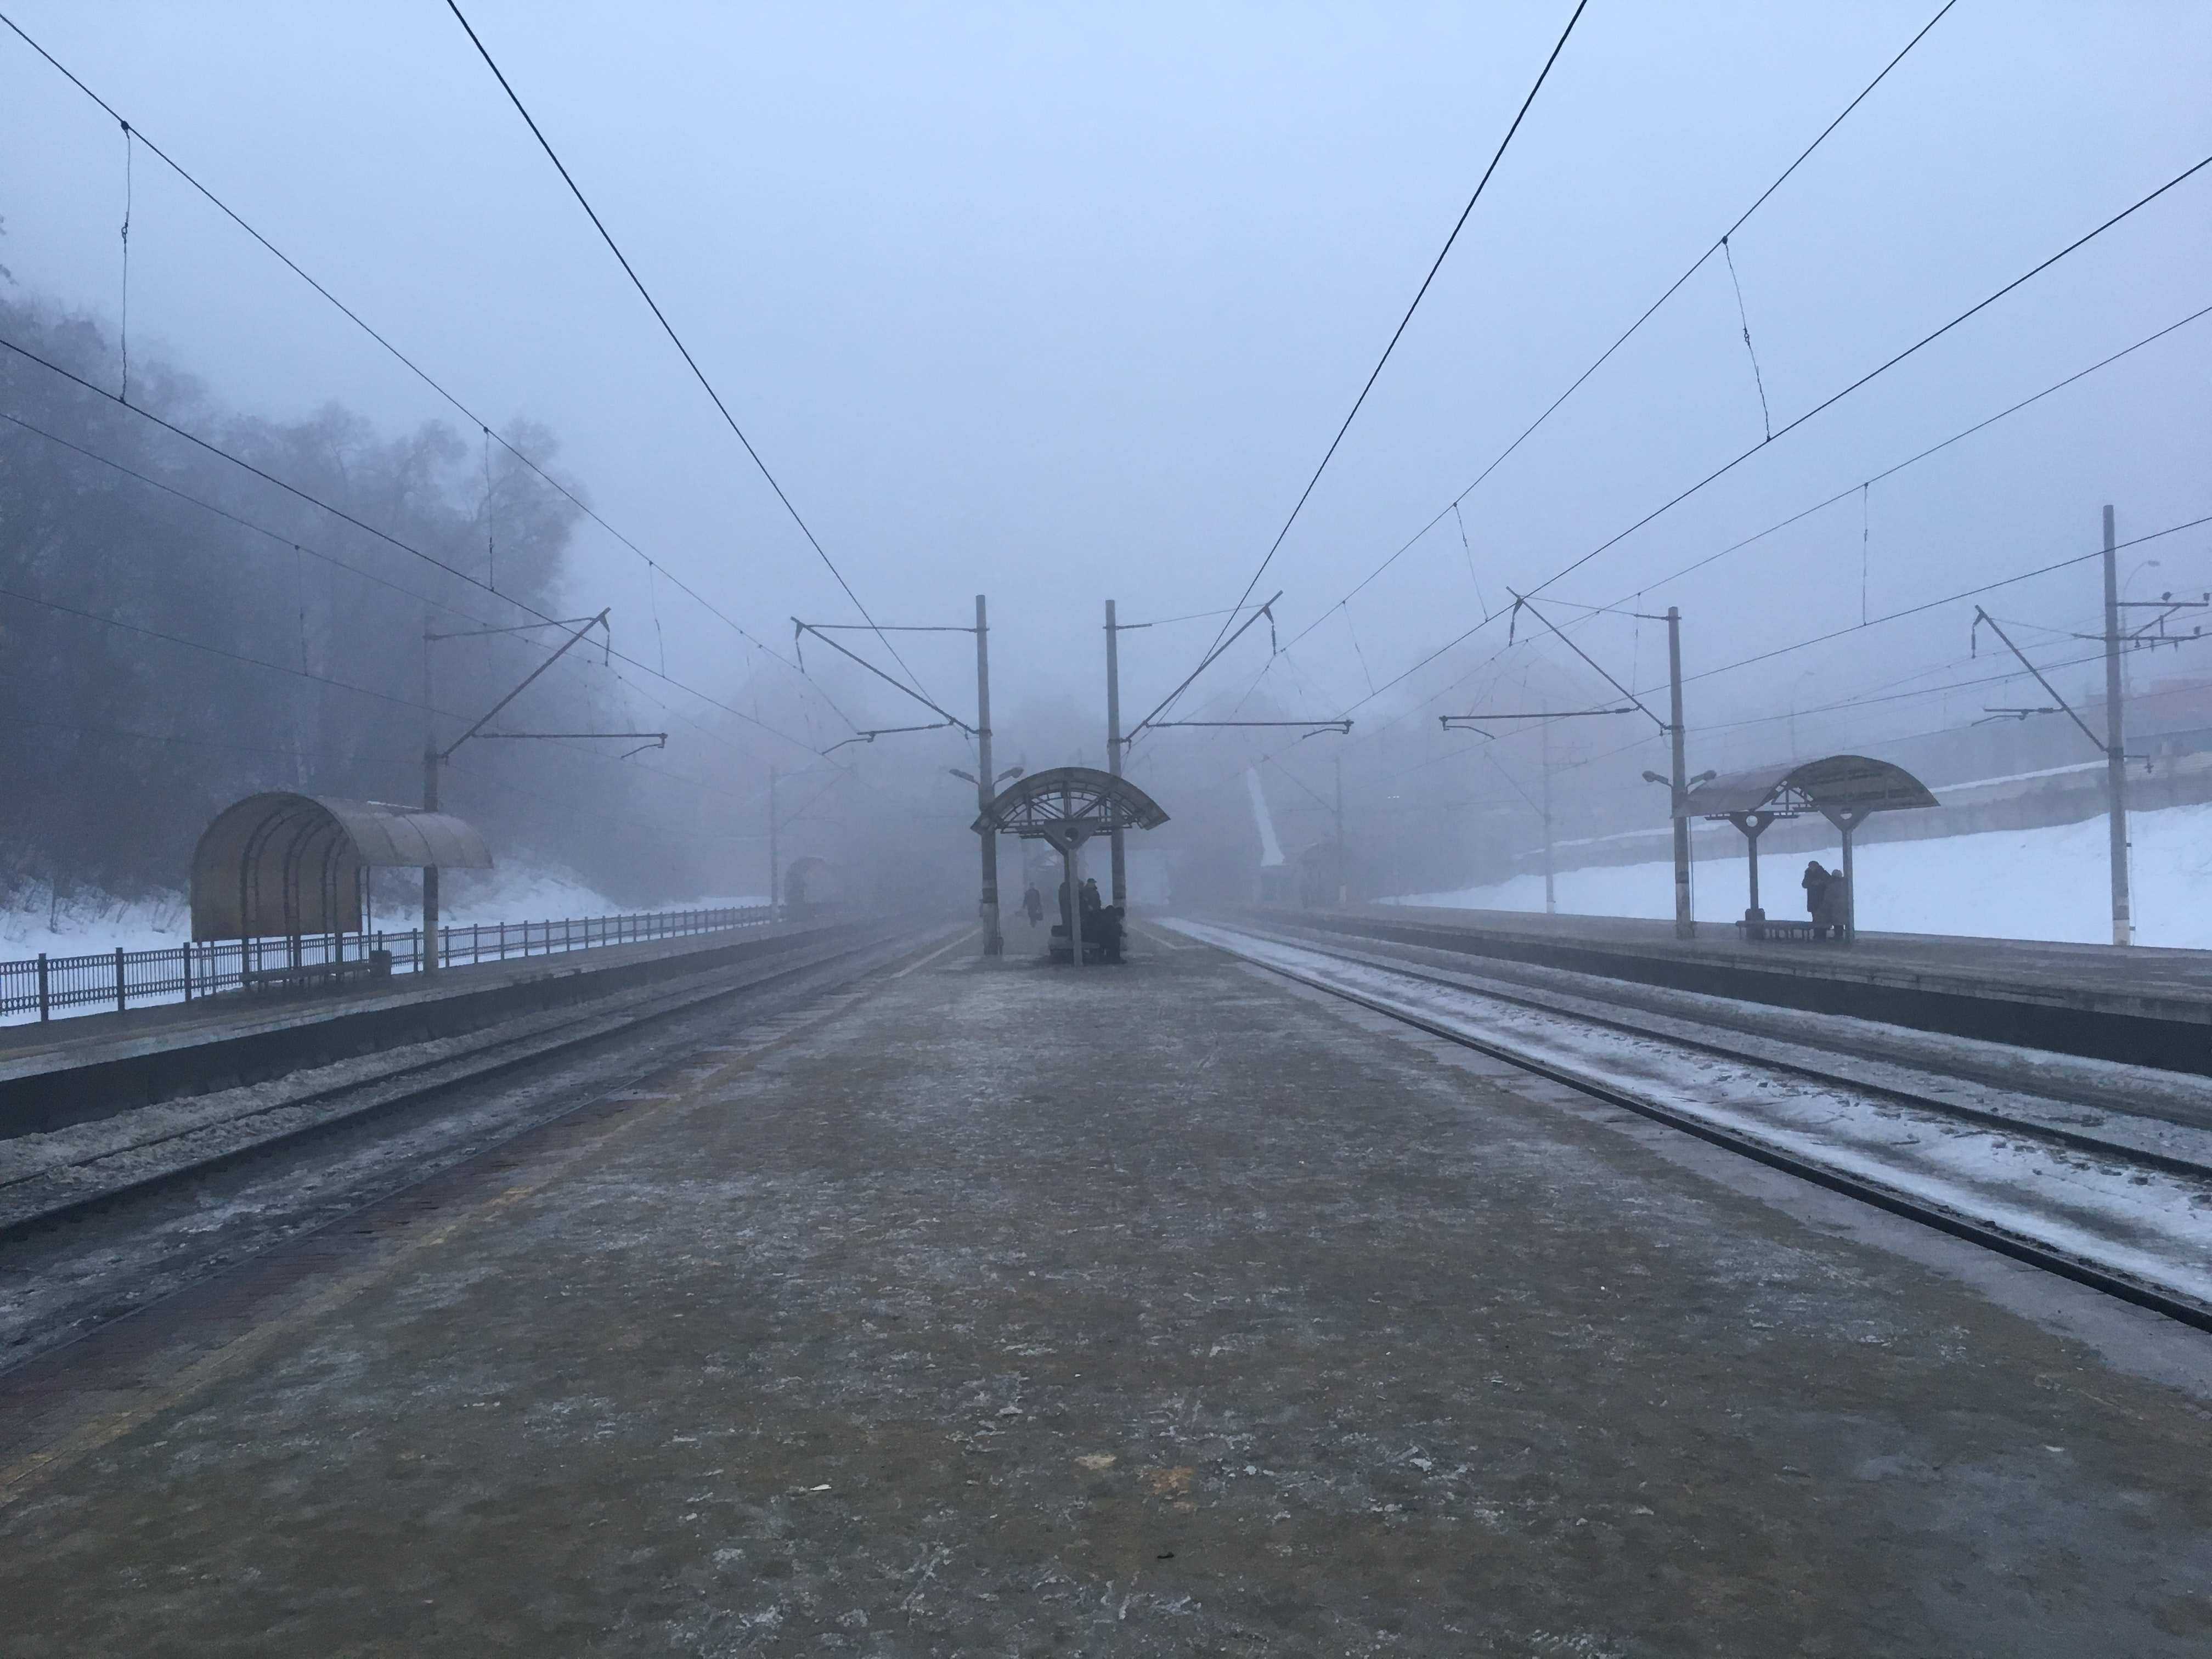 railway on foggy weather